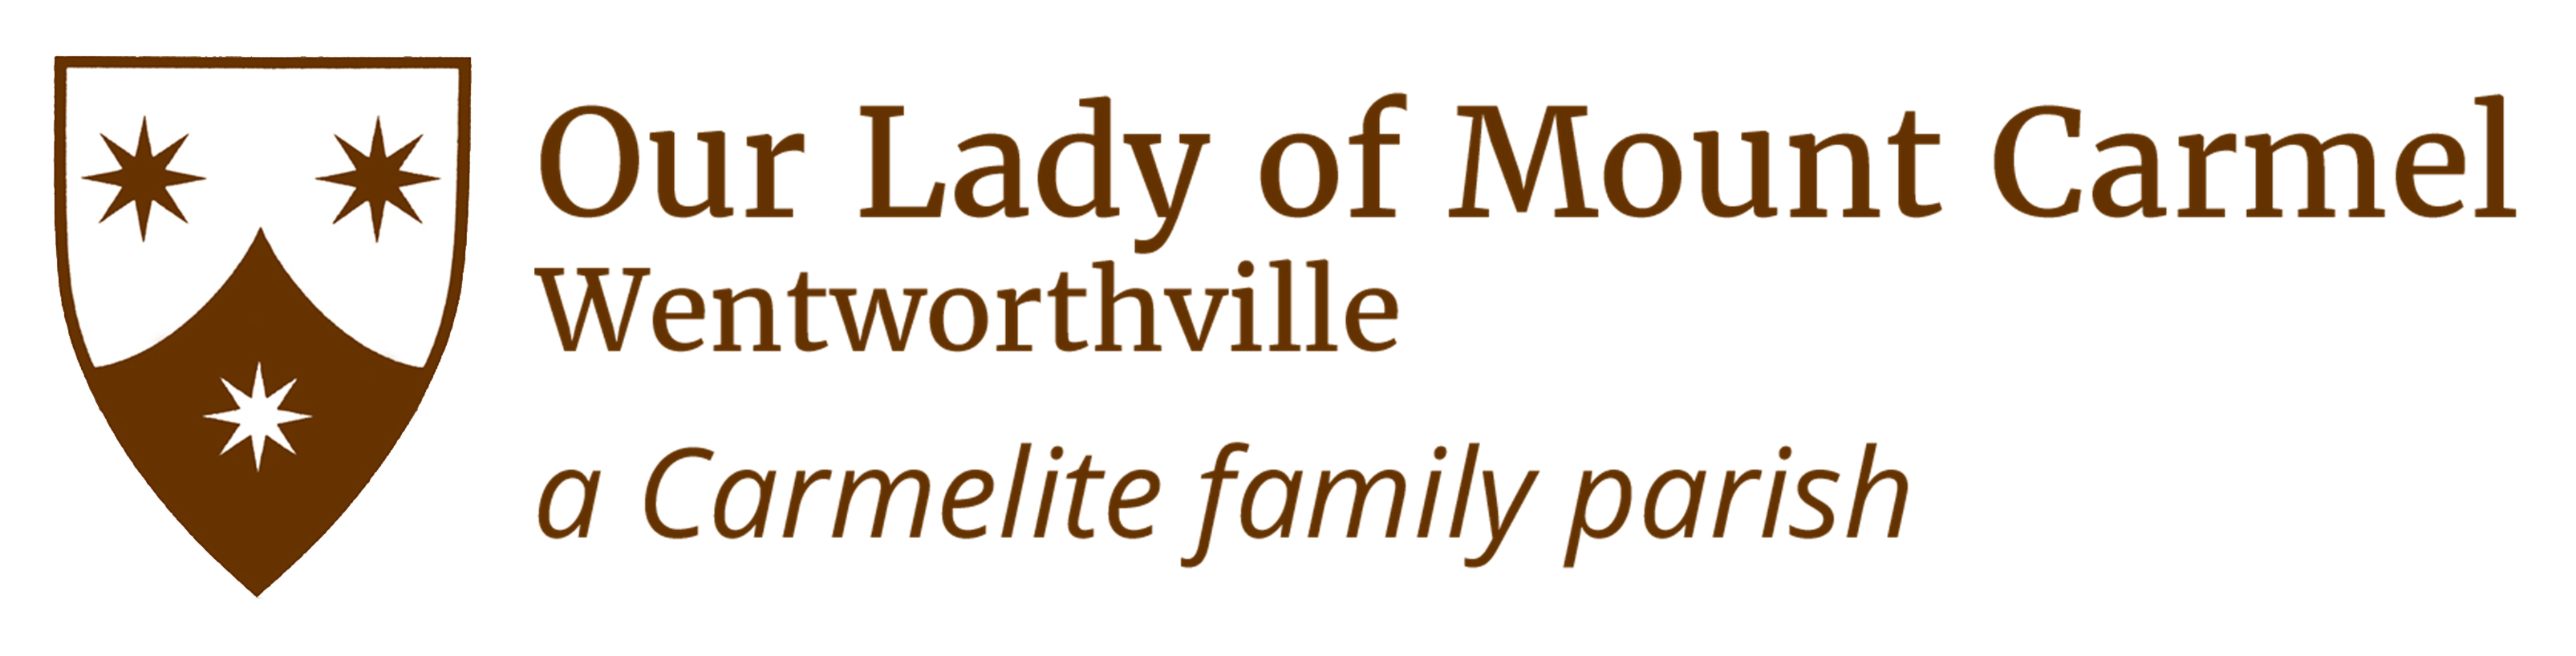 Our Lady of Mount Carmel Wentworthville: a Carmelite Family Parish